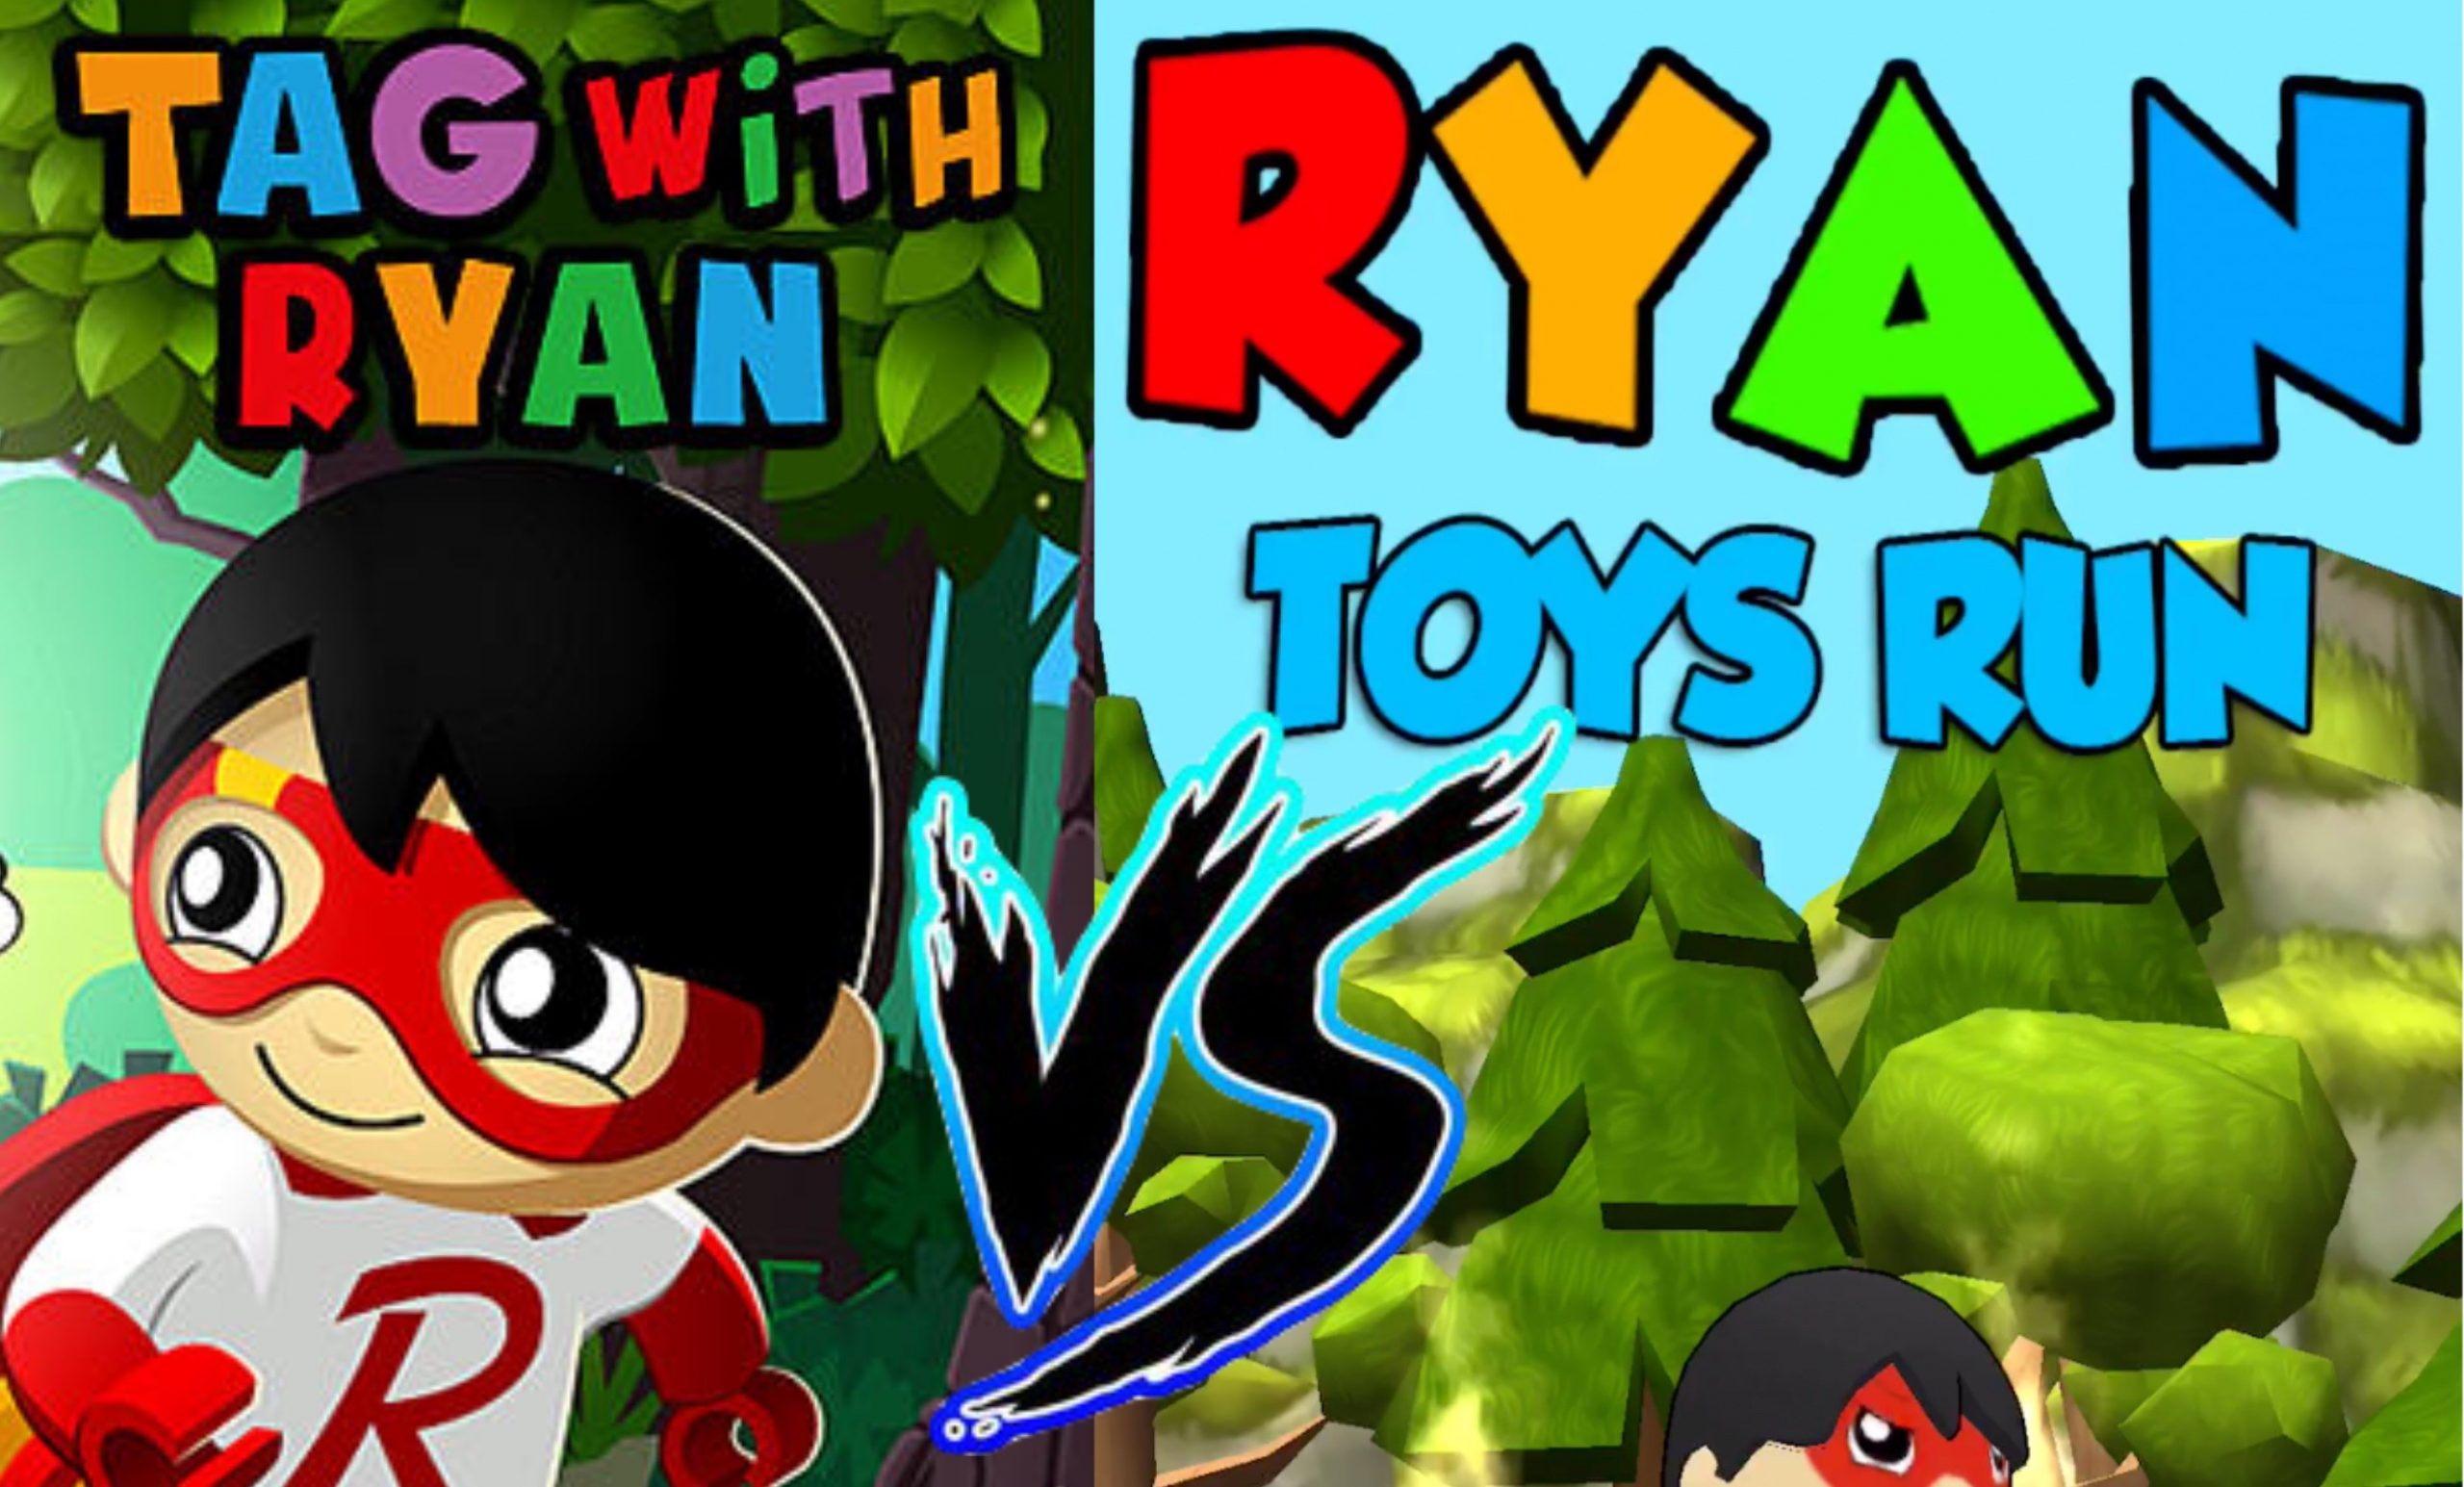 Tag with Ryan Vs Ryan Toys Run